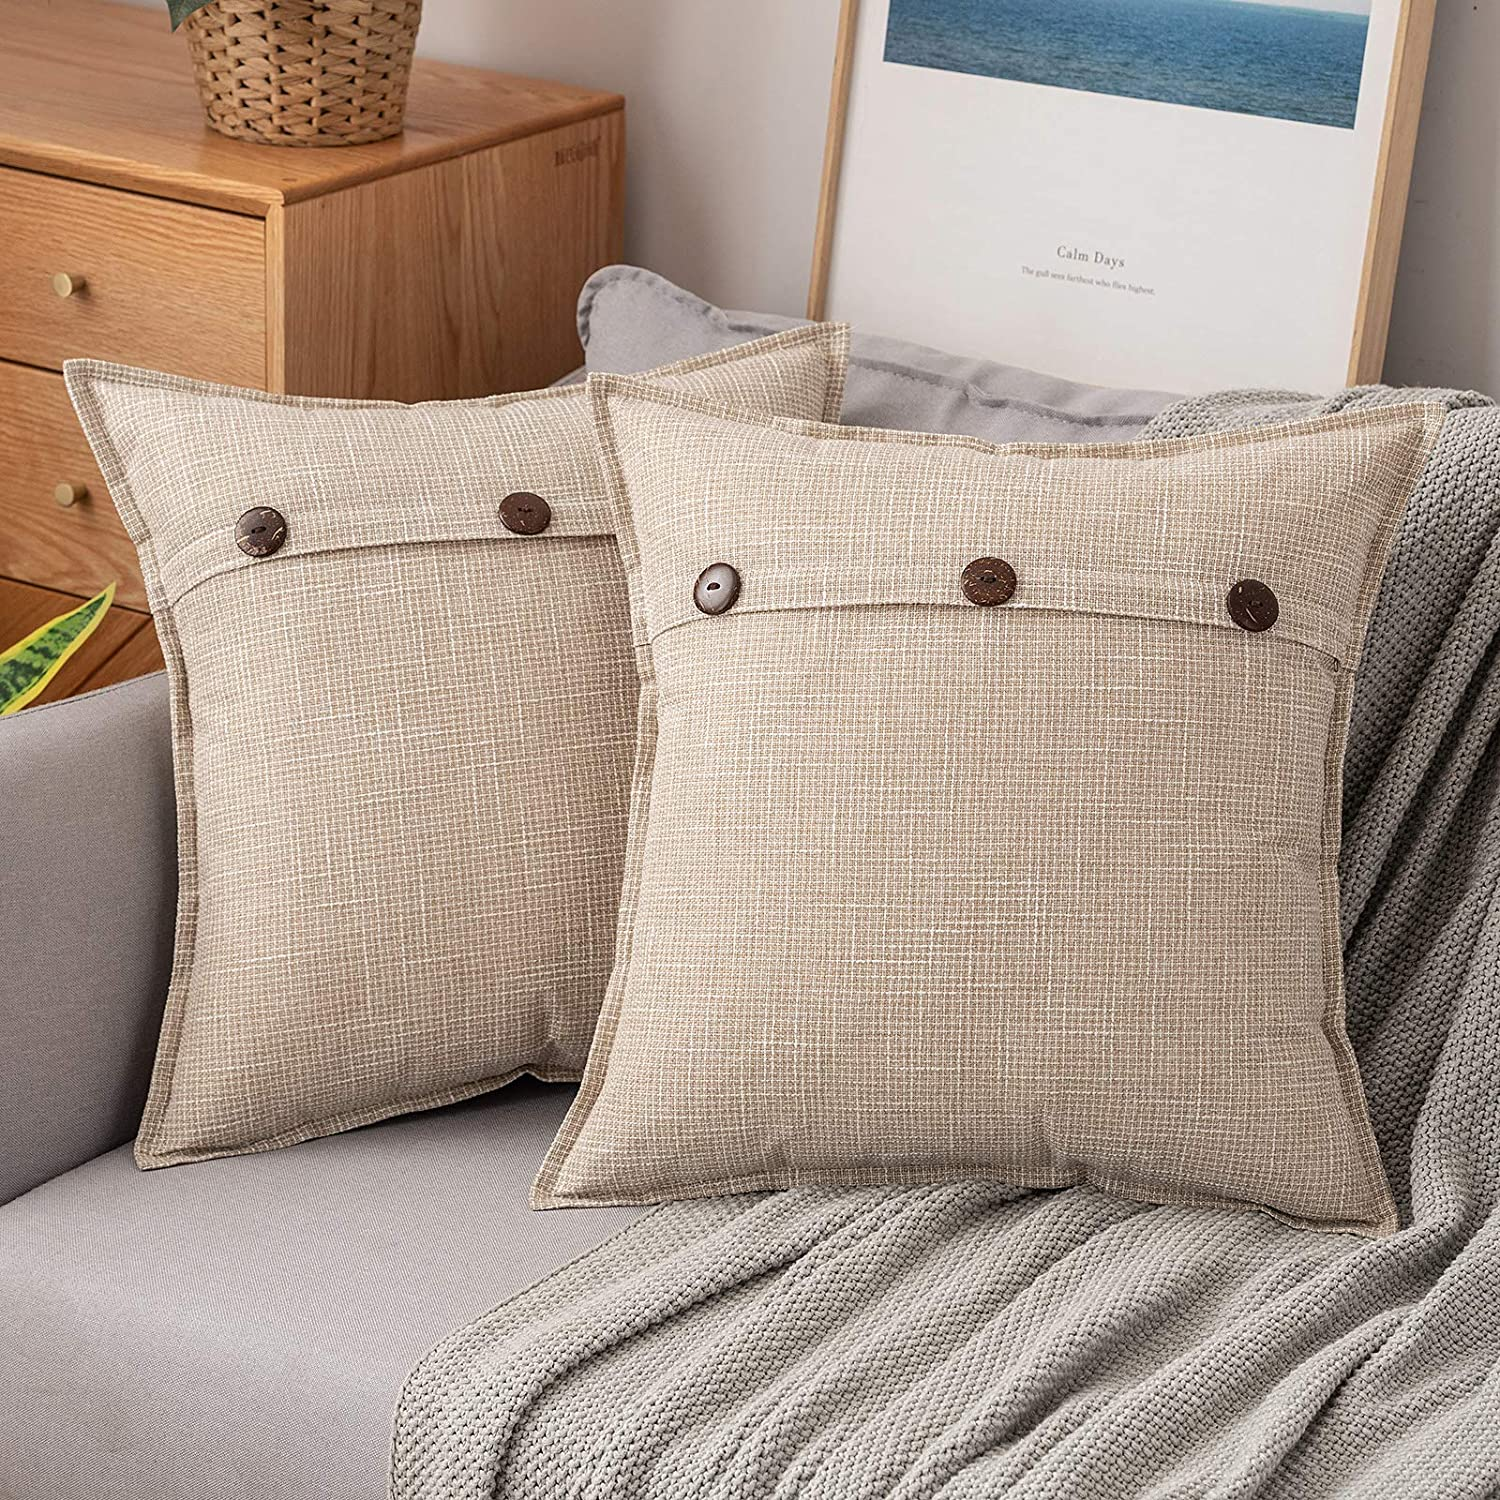 MIULEE Pack of 2 Farmhouse Linen Throw Pillow Covers Decorative Triple Button Square Pillowcases Trimmed Edge Burlap Cushion Cases for Couch Sofa Car Living Room Home Decor 18x18 Inch Beige